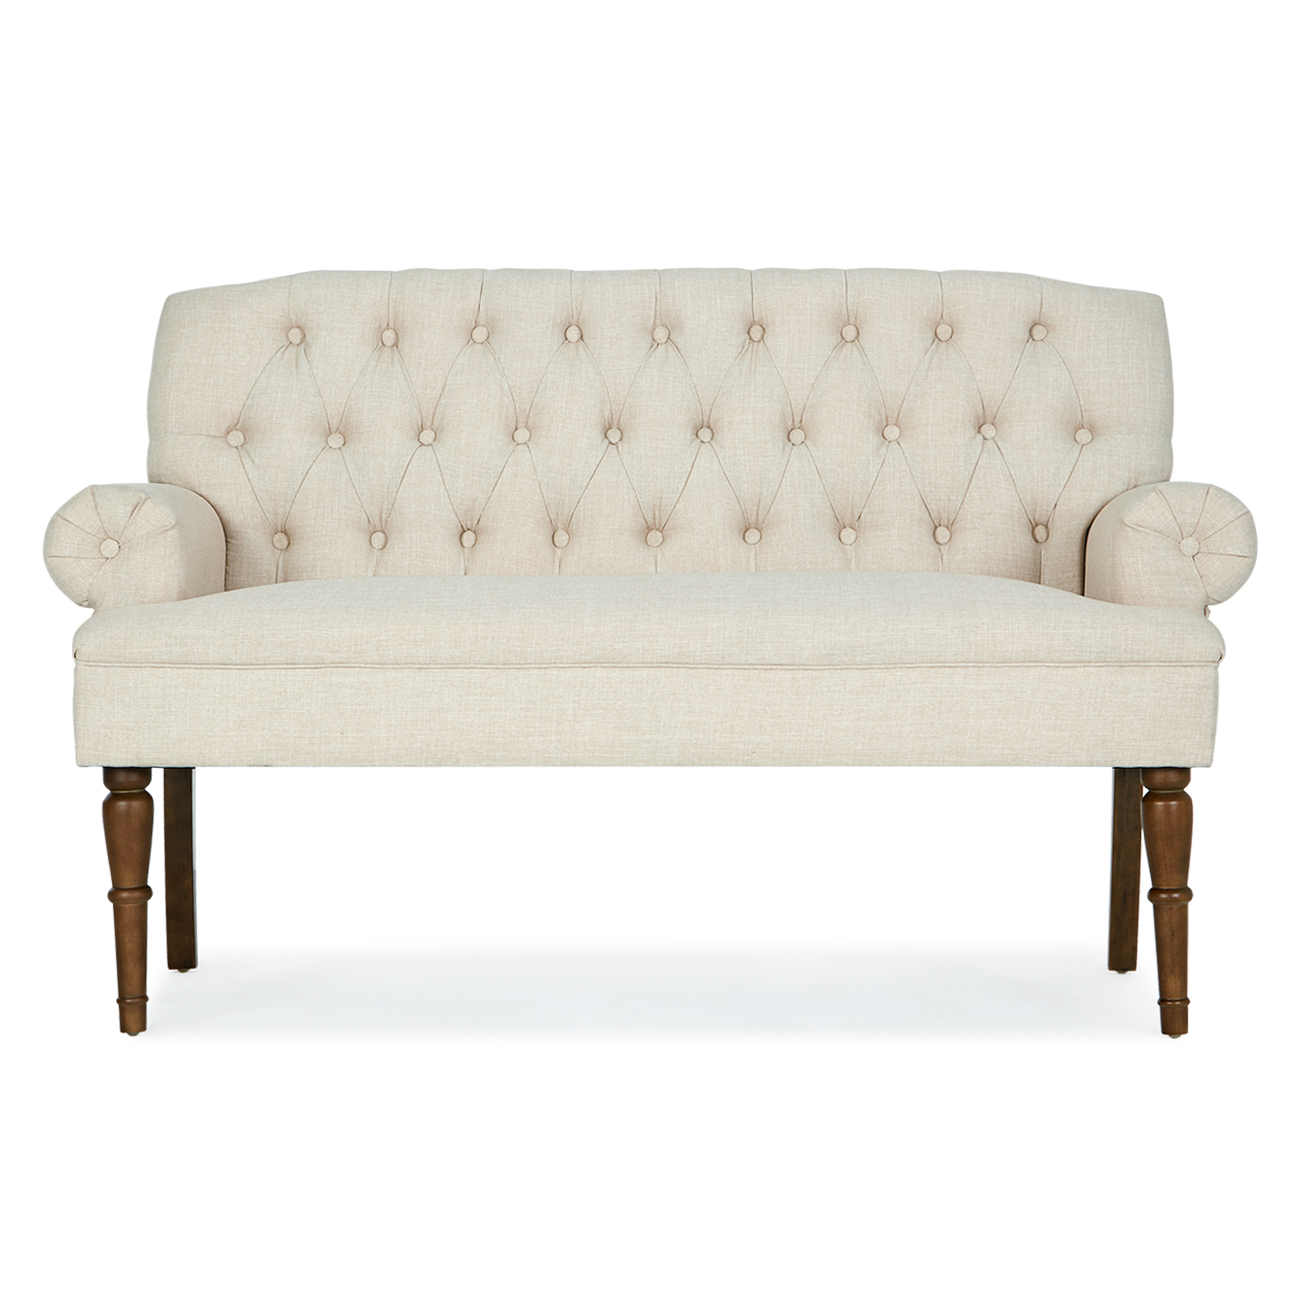 Beau Settee Button Tufted Vintage Sofa Couch Bench W